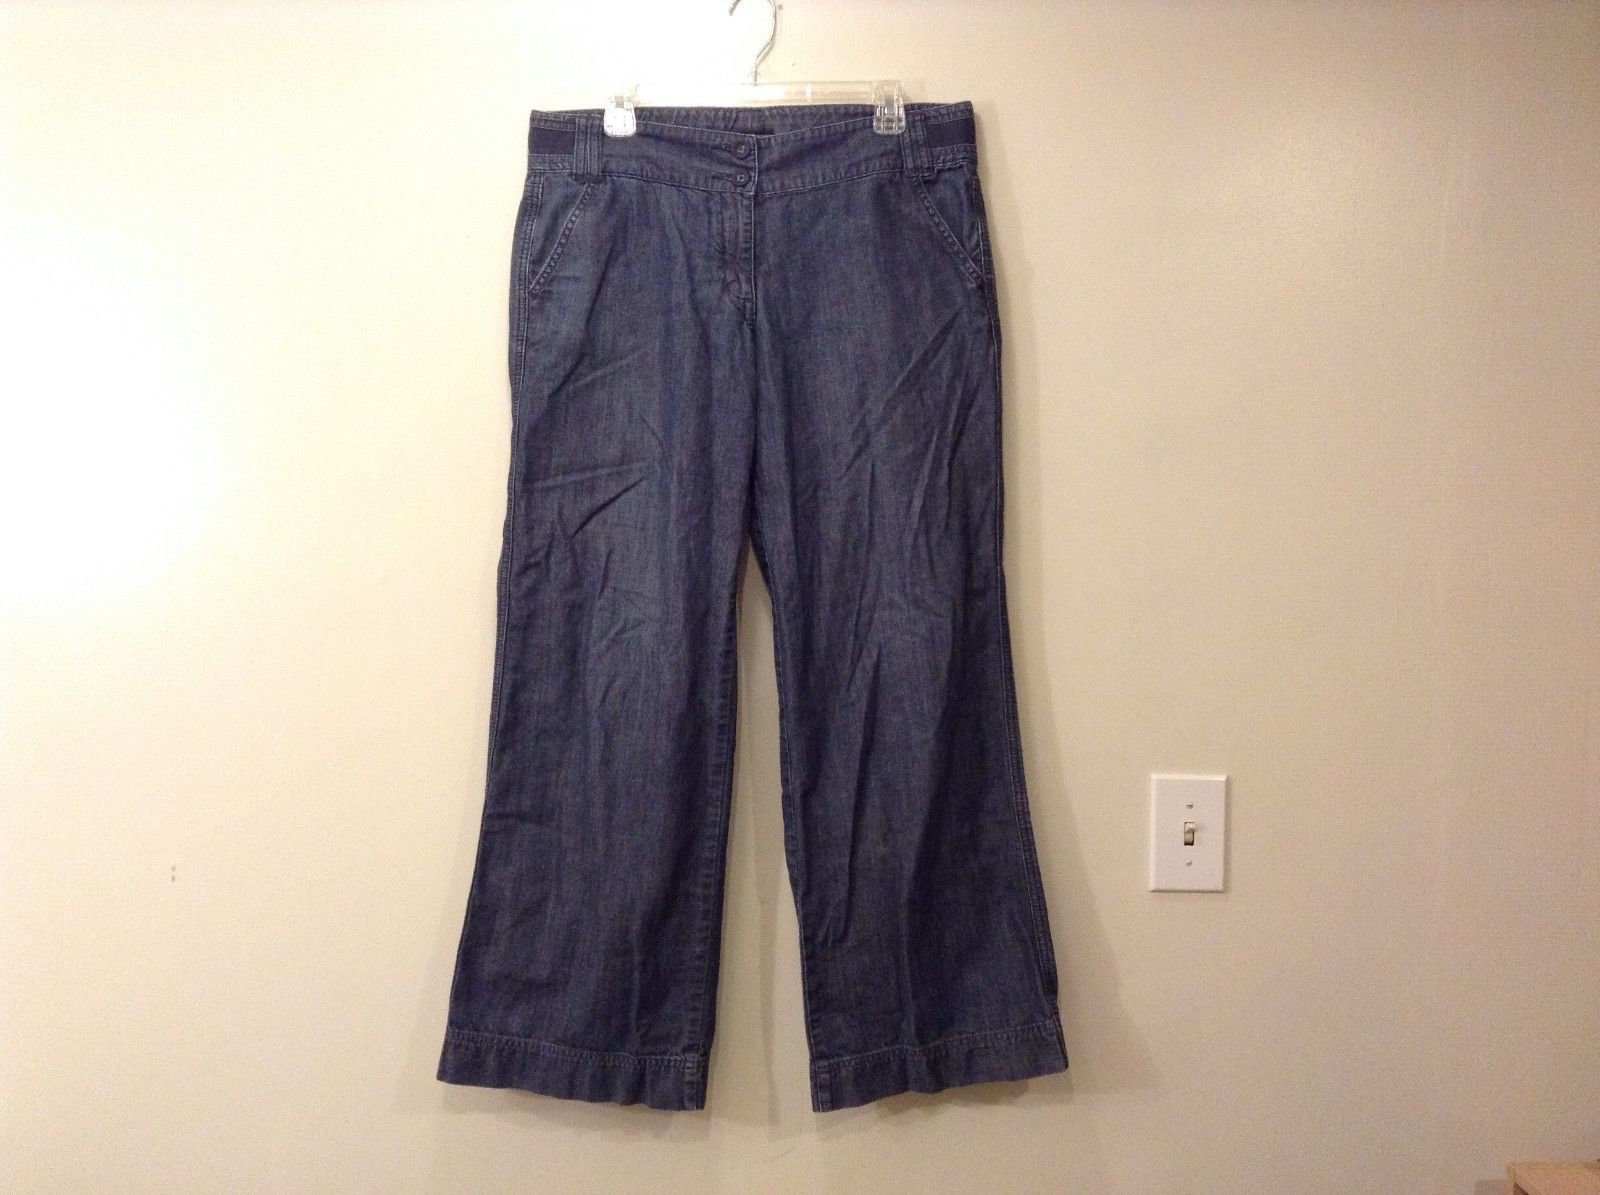 Ladies New York And Company Blue Gray Wide Leg Jeans Pants Sz 12A